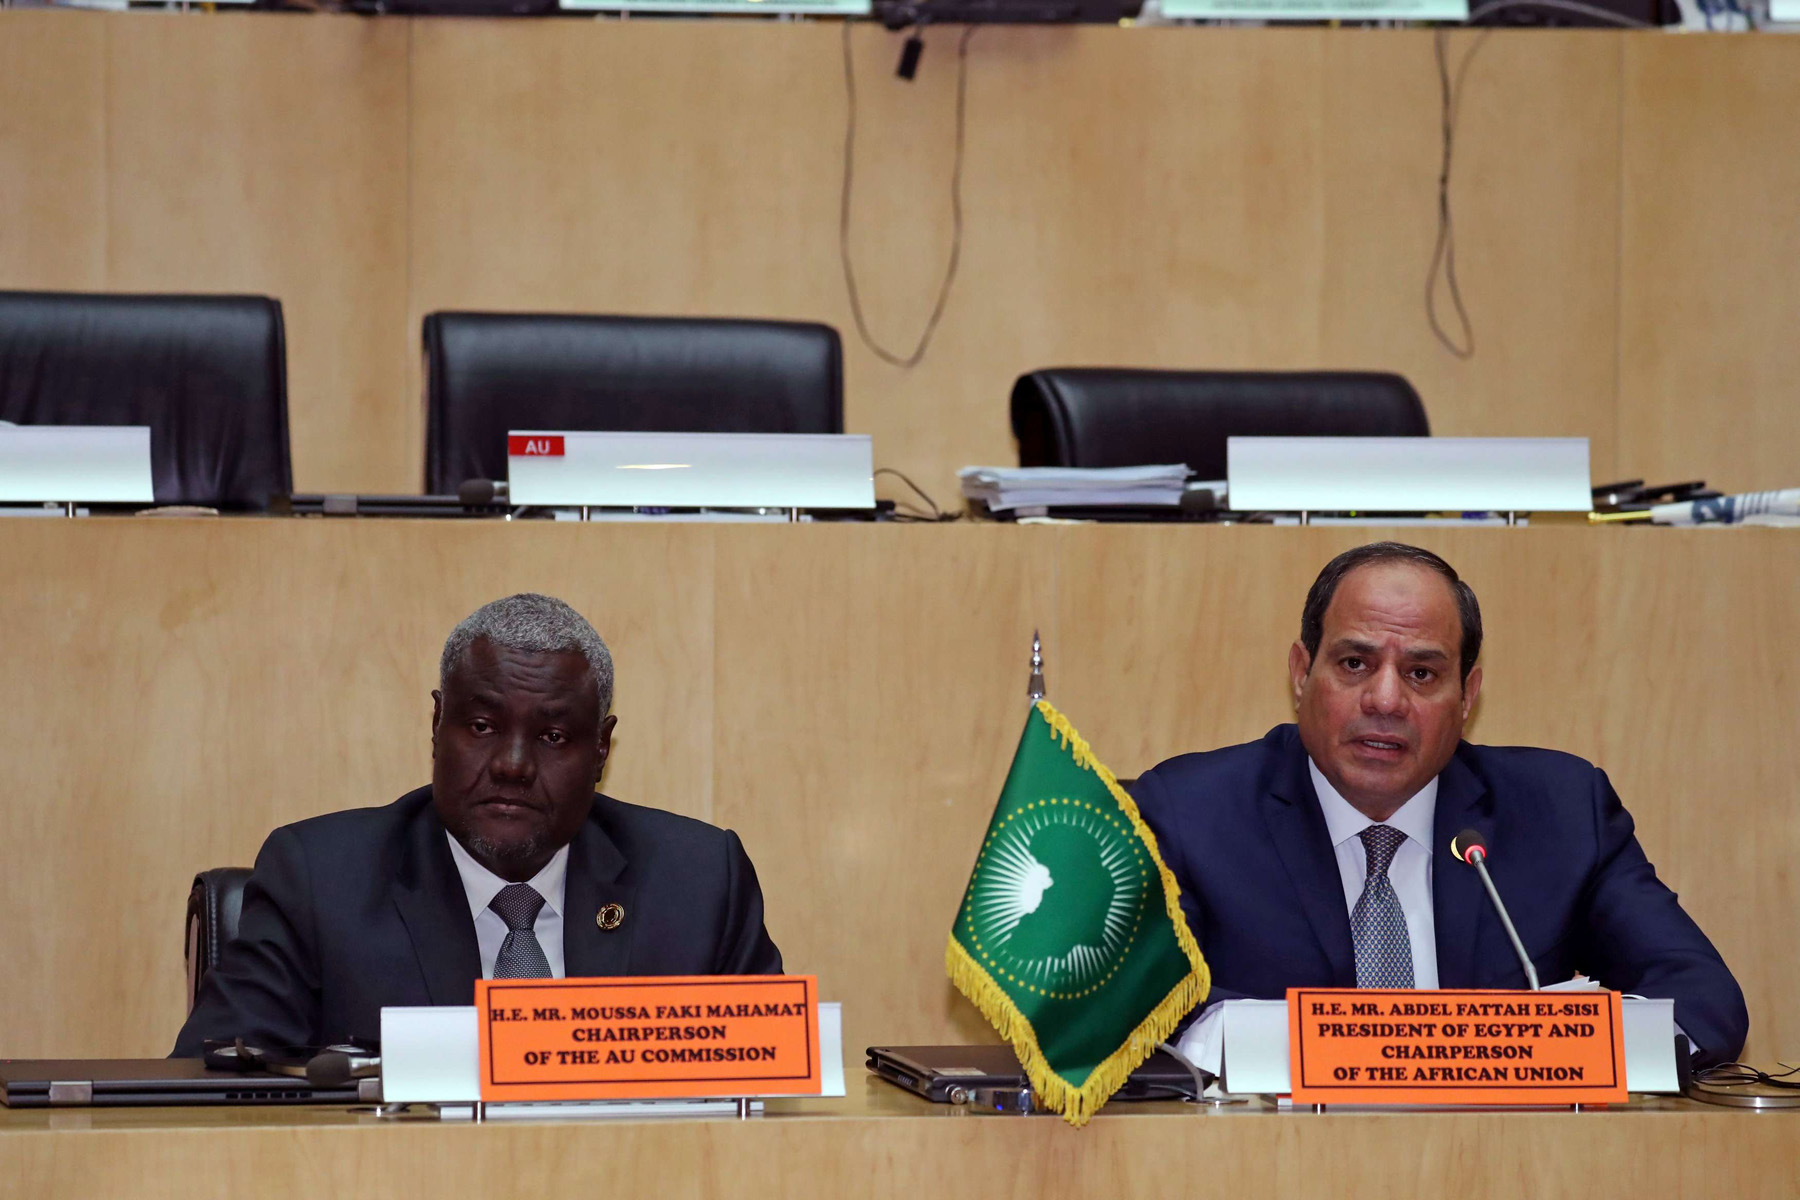 Big plans. Egyptian President Abdel Fattah al-Sisi (R) and the incoming Chairman of the African Union Commission Moussa Faki Mahamat attend a news conference in Addis Ababa, February 11.         (Reuters)